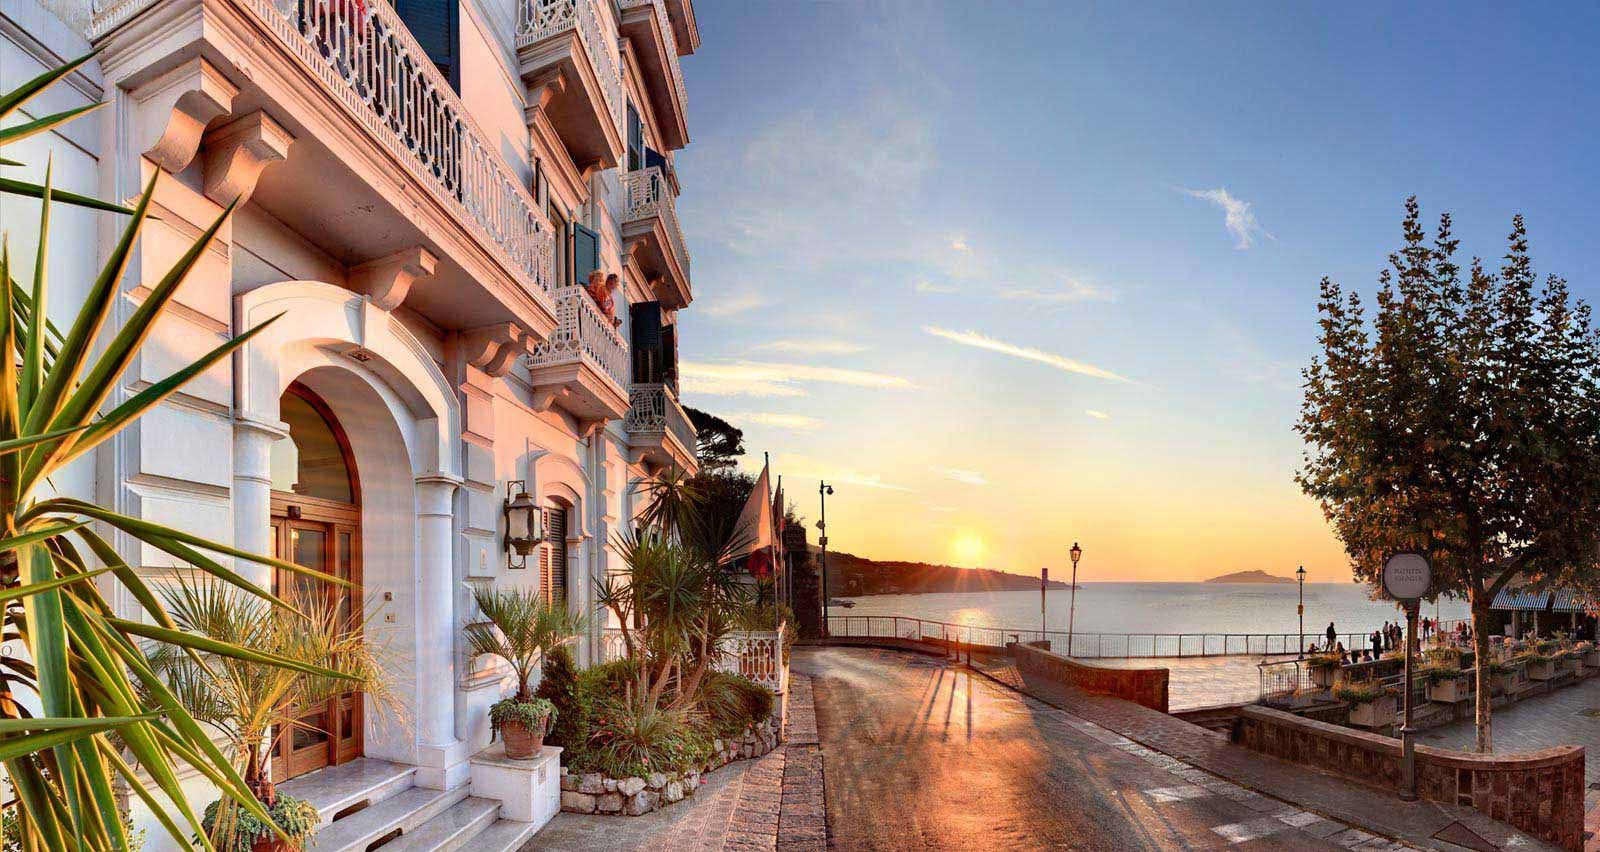 Hotel Sorrento Mediterraneo Official Site 4 Star